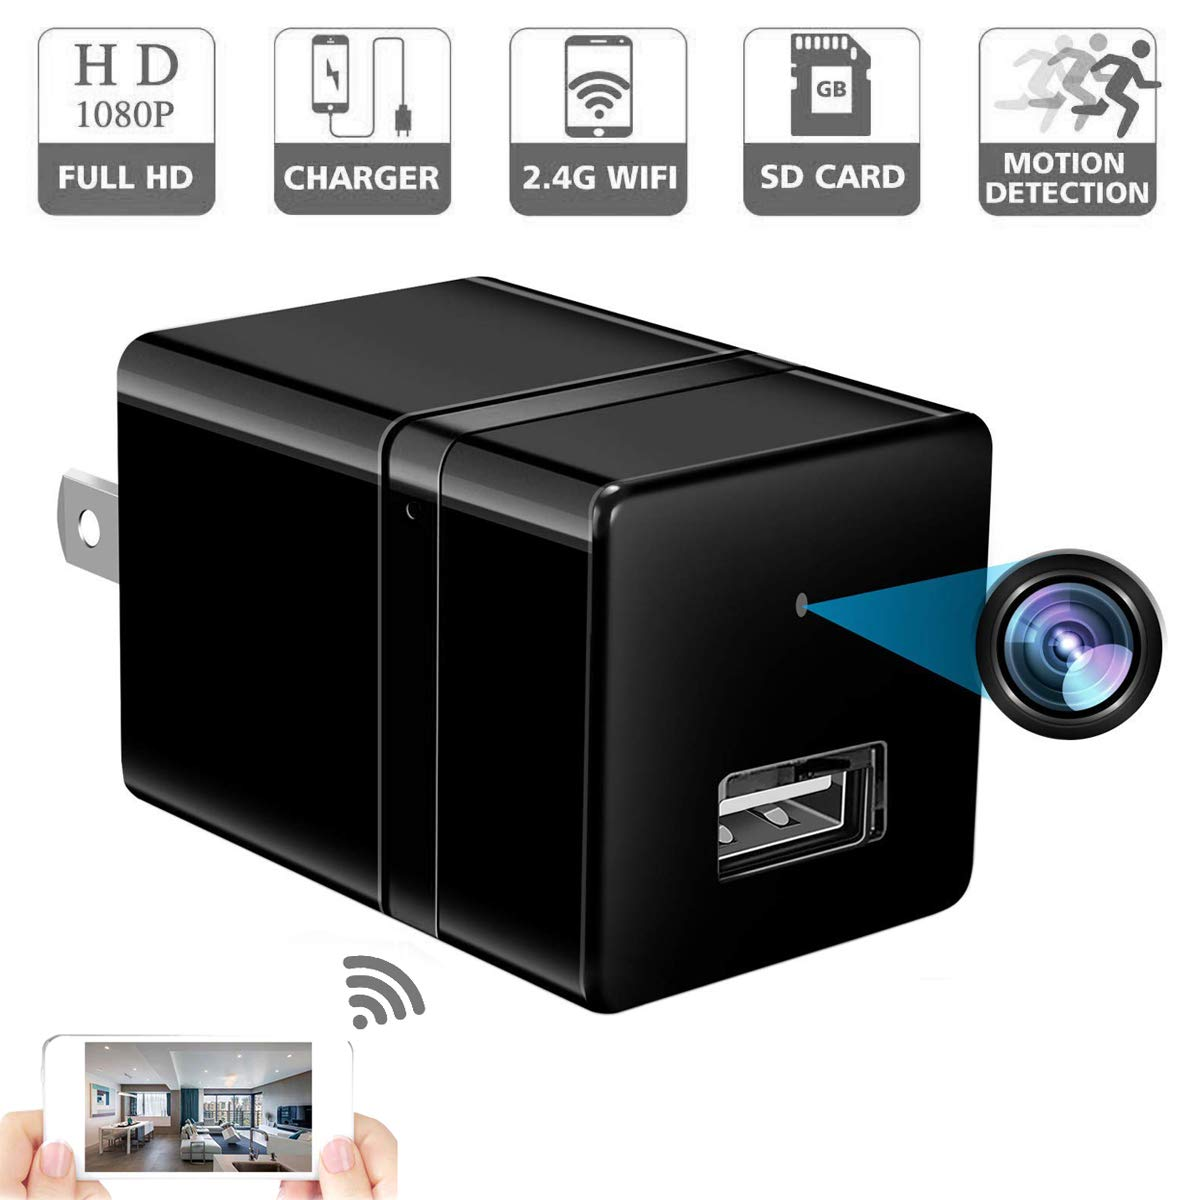 Review of Spy Camera Wireless Hidden - USB Wall Charger Camera -Nanny Cam with Cell Phone App by SPOOKER